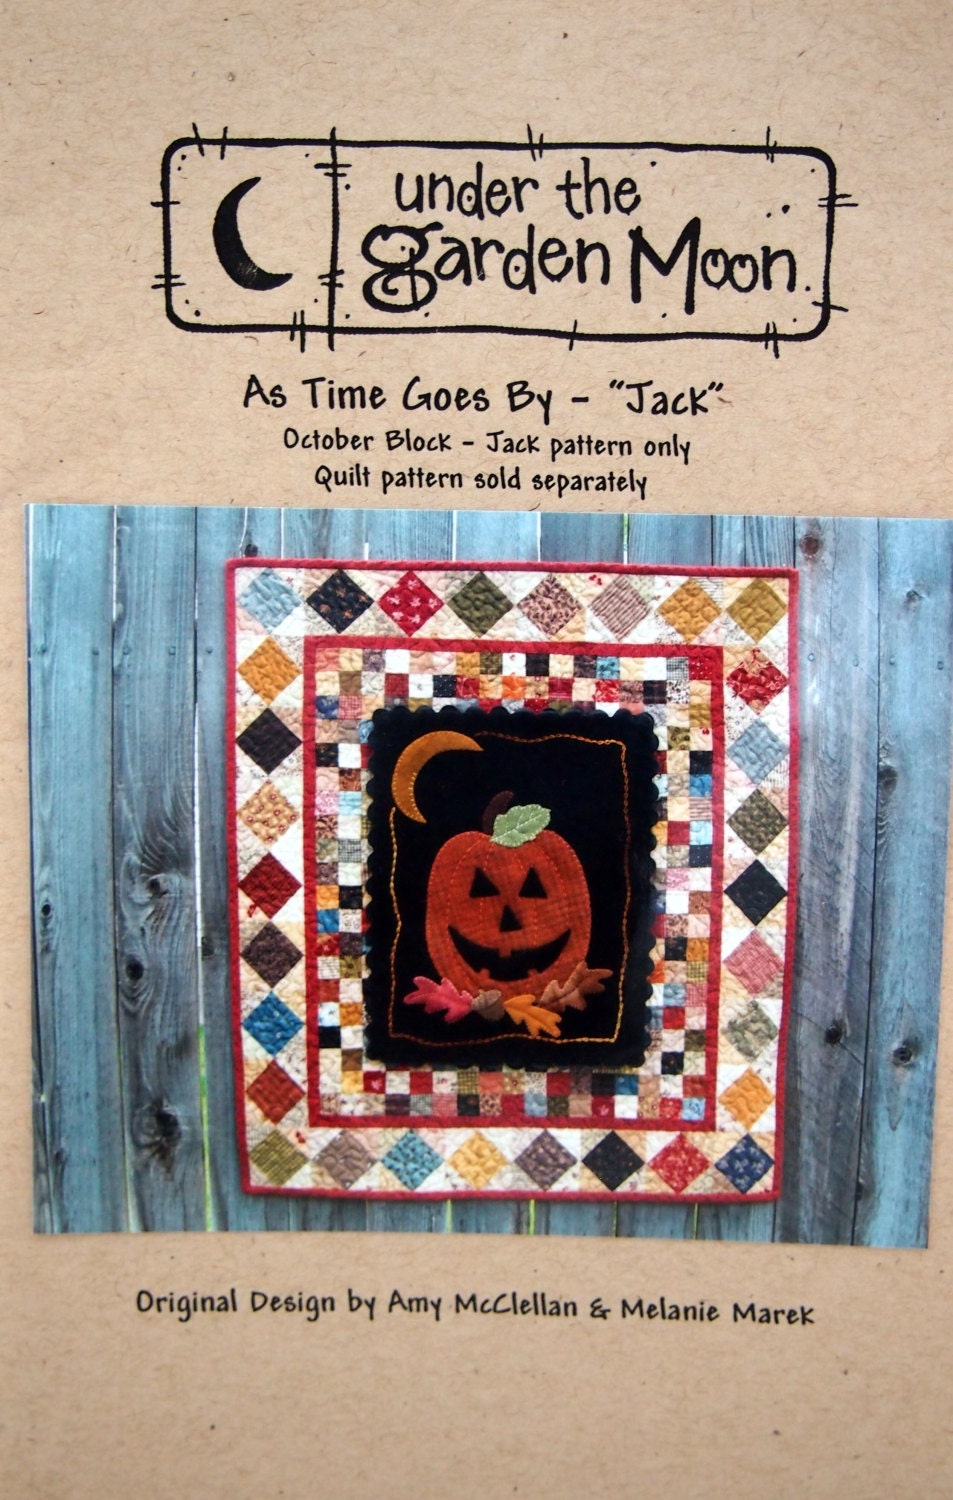 As Time Goes By Jack October Block By Amy Mcclellan Melanie Marek And Under The Garden Moon